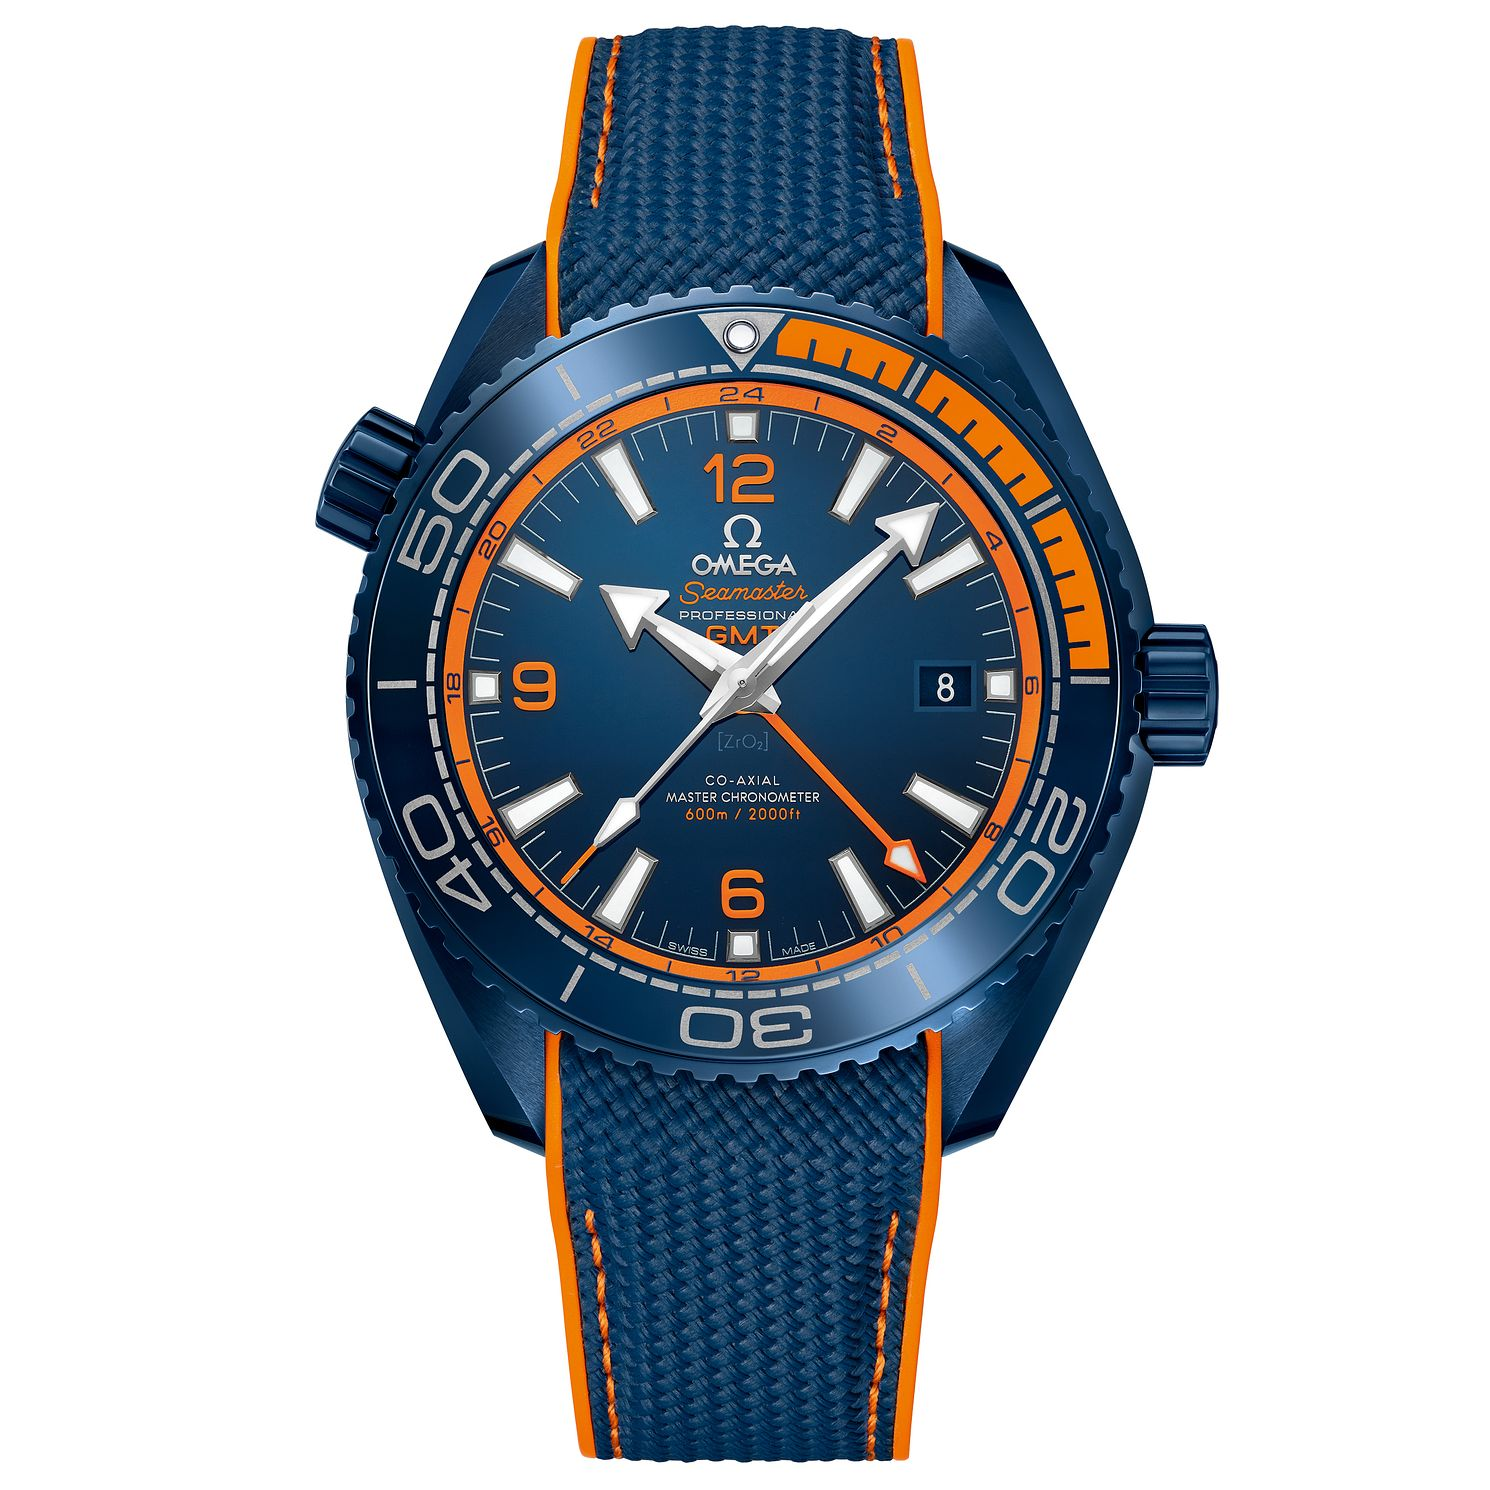 Omega Seamaster Planet Ocean Men's Ceramic Blue Strap Watch - Product number 6939732